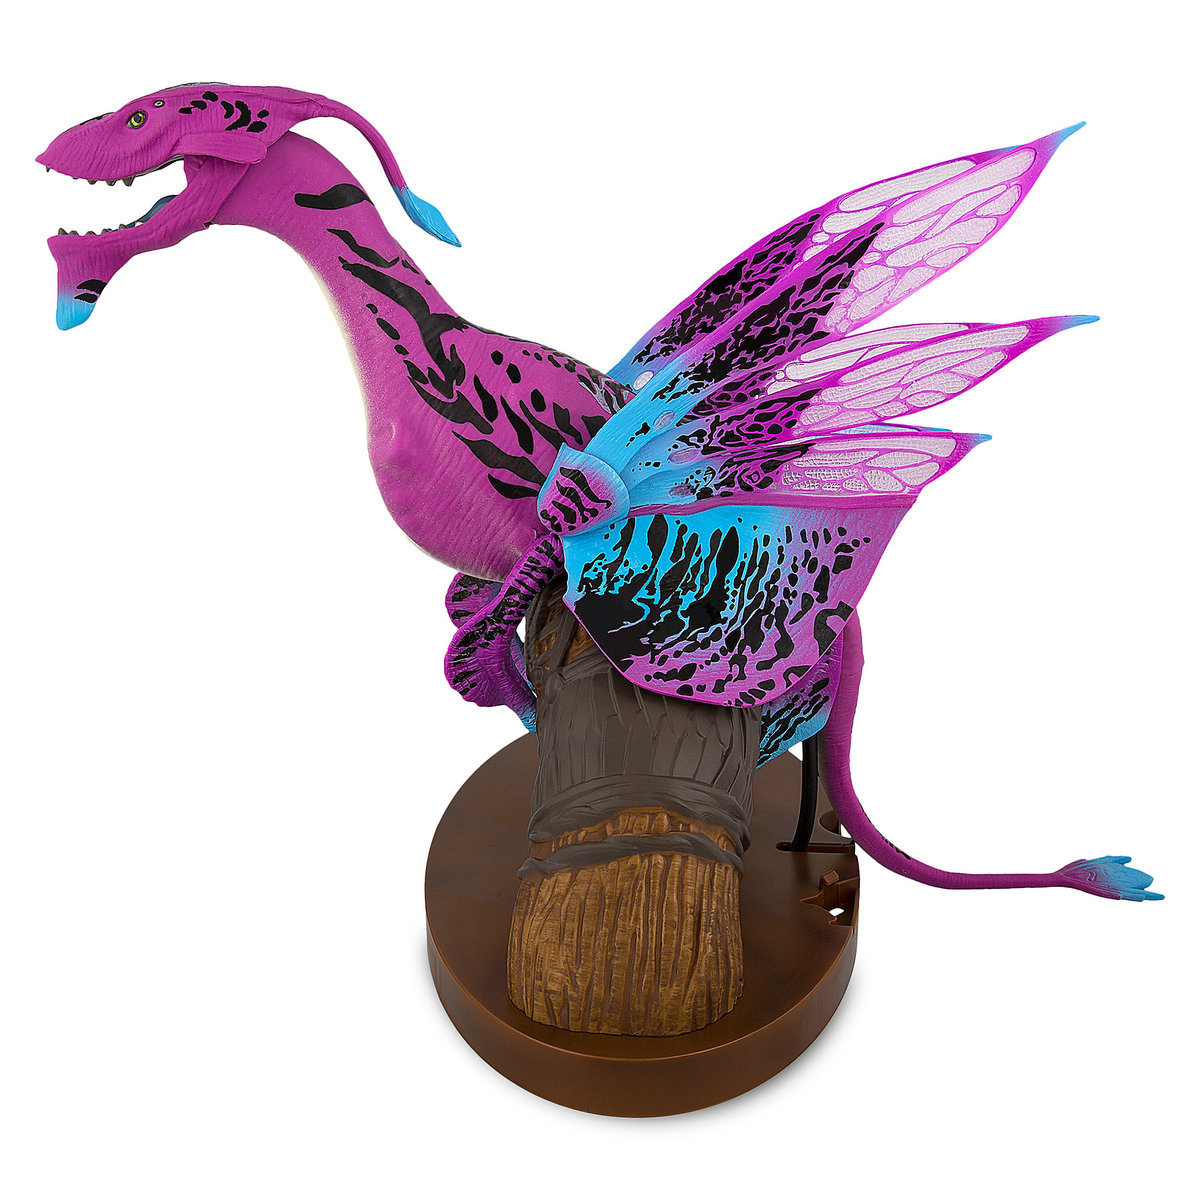 Avatar Toys: Pink/Purple Body With Blue Accents